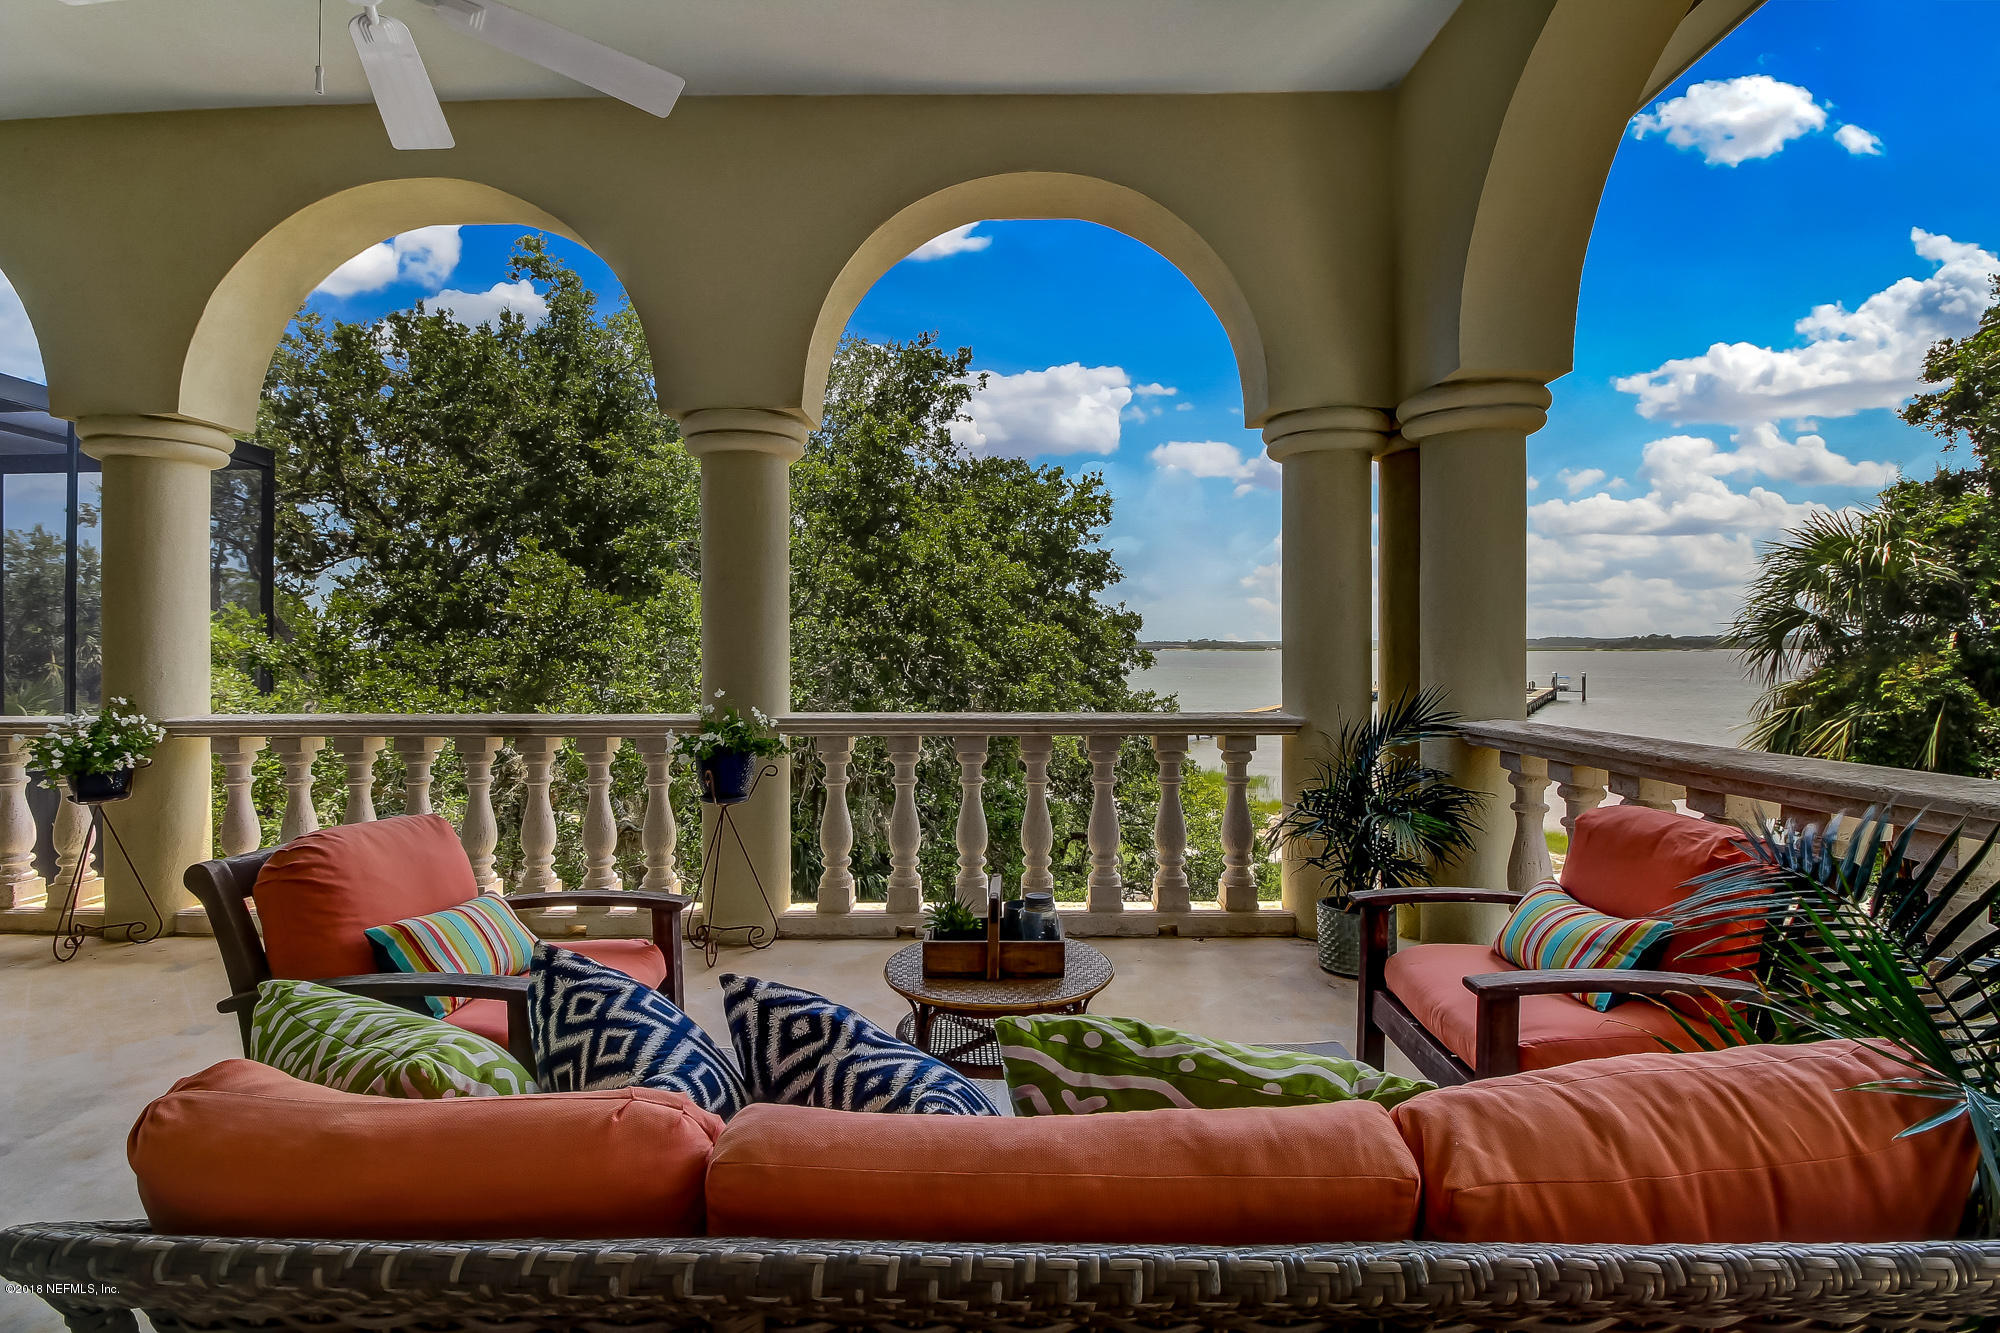 117 LONG POINT, FERNANDINA BEACH, FLORIDA 32034, 3 Bedrooms Bedrooms, ,3 BathroomsBathrooms,Residential - townhome,For sale,LONG POINT,872548